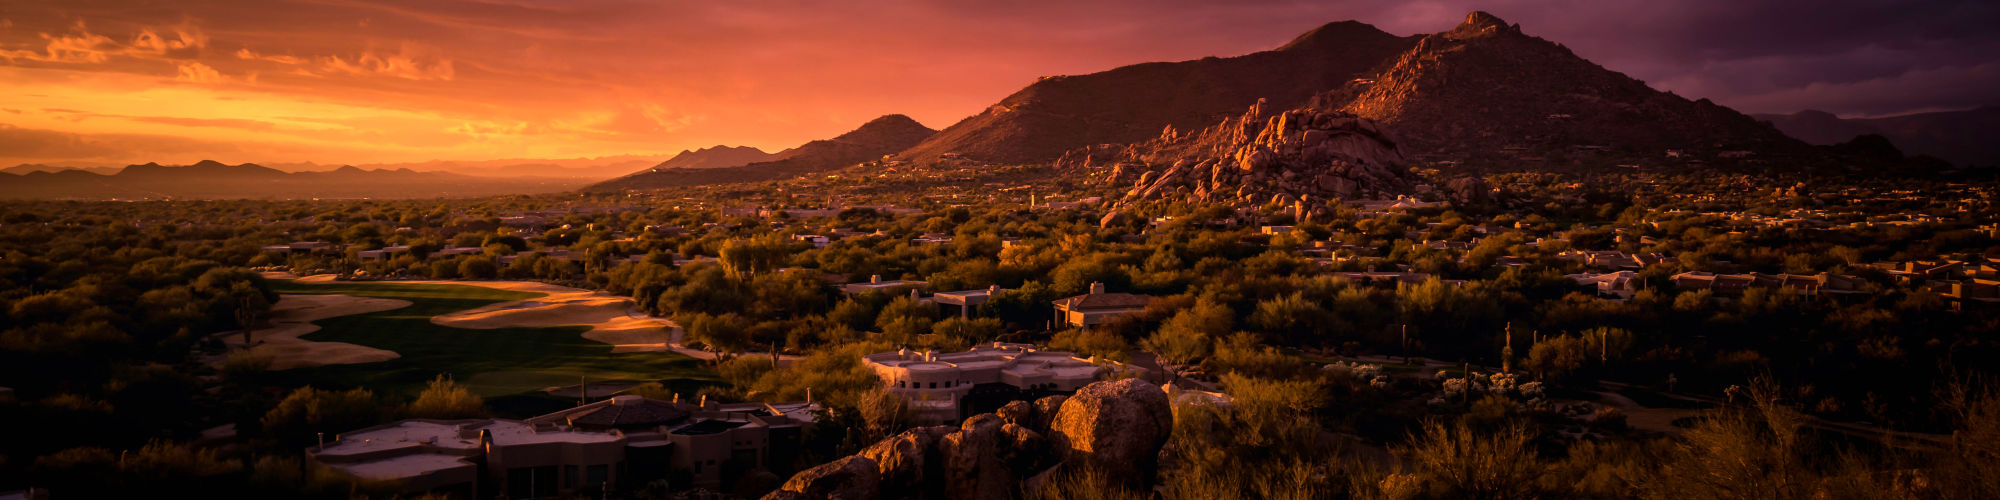 Apply to live at San Norterra in Phoenix, Arizona